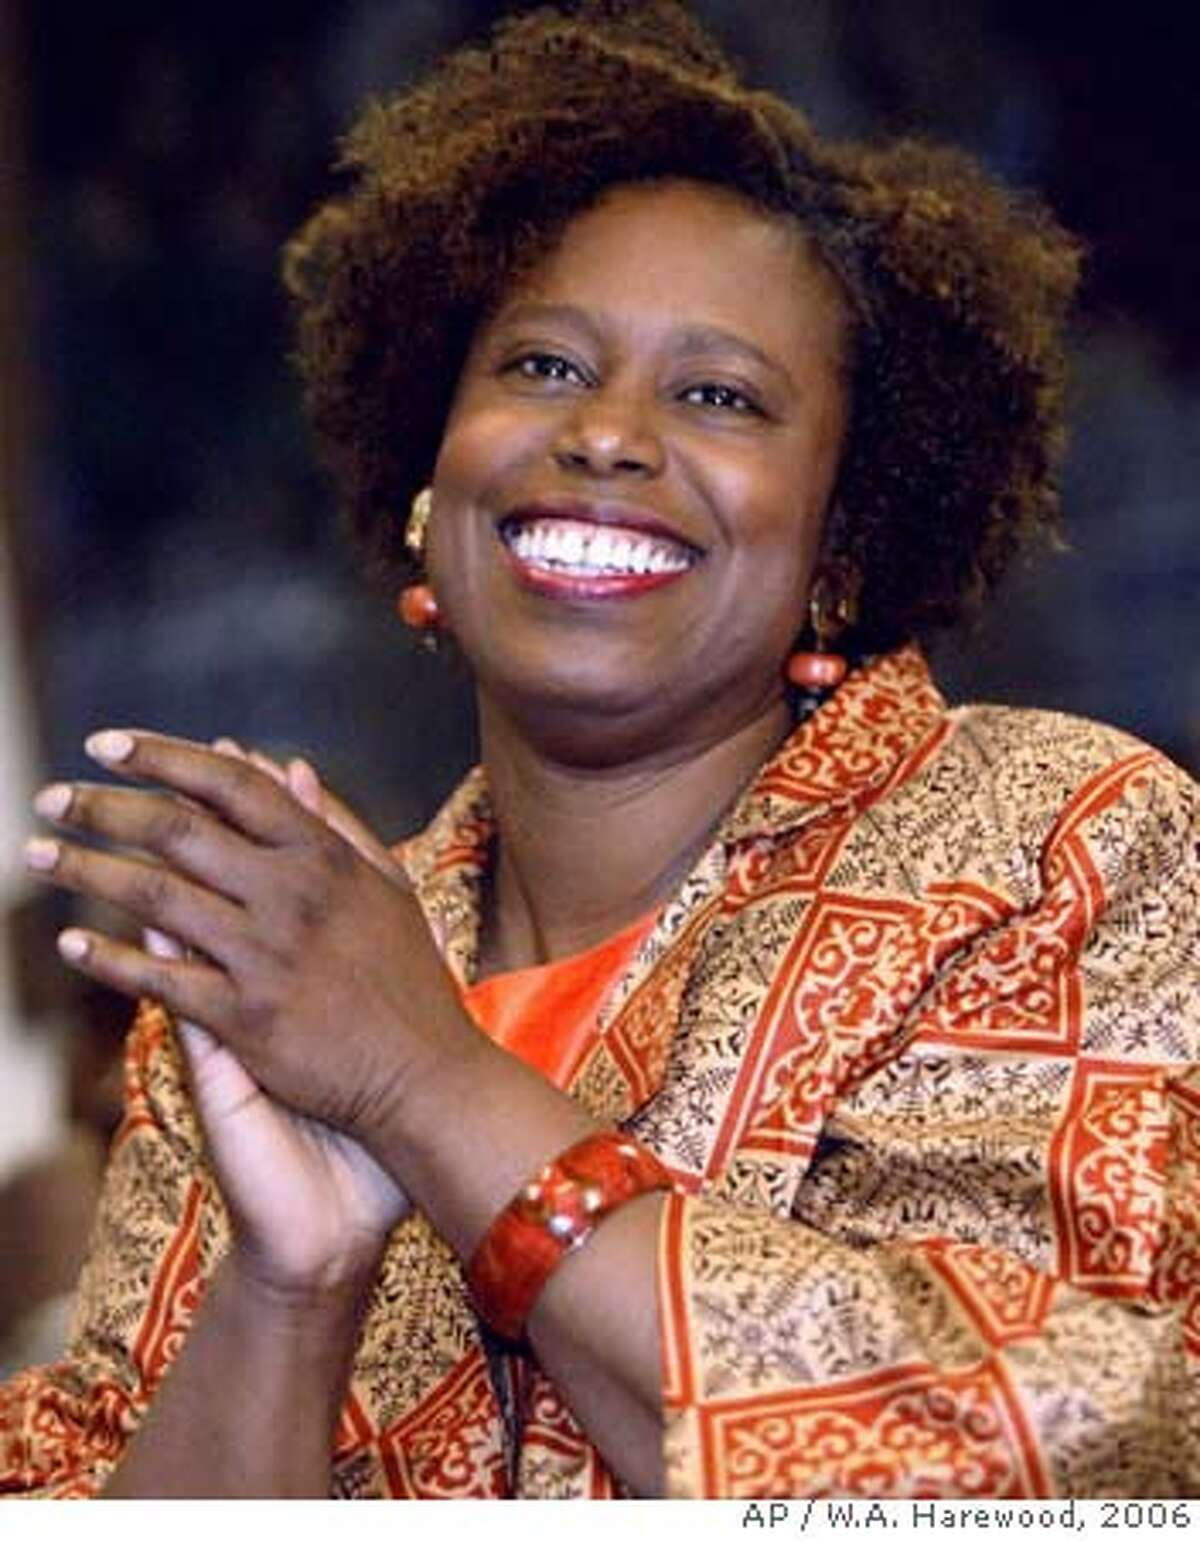 Rep. Cynthia McKinney, D-Ga.,is shown during a news conference in Atlanta, Monday, April 3, 2006. When McKinney returned to Congress in 2004, friends and foes saw a quieter, more amiable version of the lawmaker who once suggested the Bush White House had prior knowledge of the Sept. 11 attacks. But now, as she aggressively defends herself for scuffling with a Capitol police officer, it is clear the makeover didn't last long. (AP Photo/W.A. Harewood)Ran on: 04-06-2006 Rep. Cynthia McKinney turned the incident into a crime when she struck an officer, police said. Ran on: 06-17-2006 Rep. Cynthia McKinney apologized for the incident in which she struck a Capitol Police officer. PHOTO TAKEN MONDAY, APRIL 3, 2006.